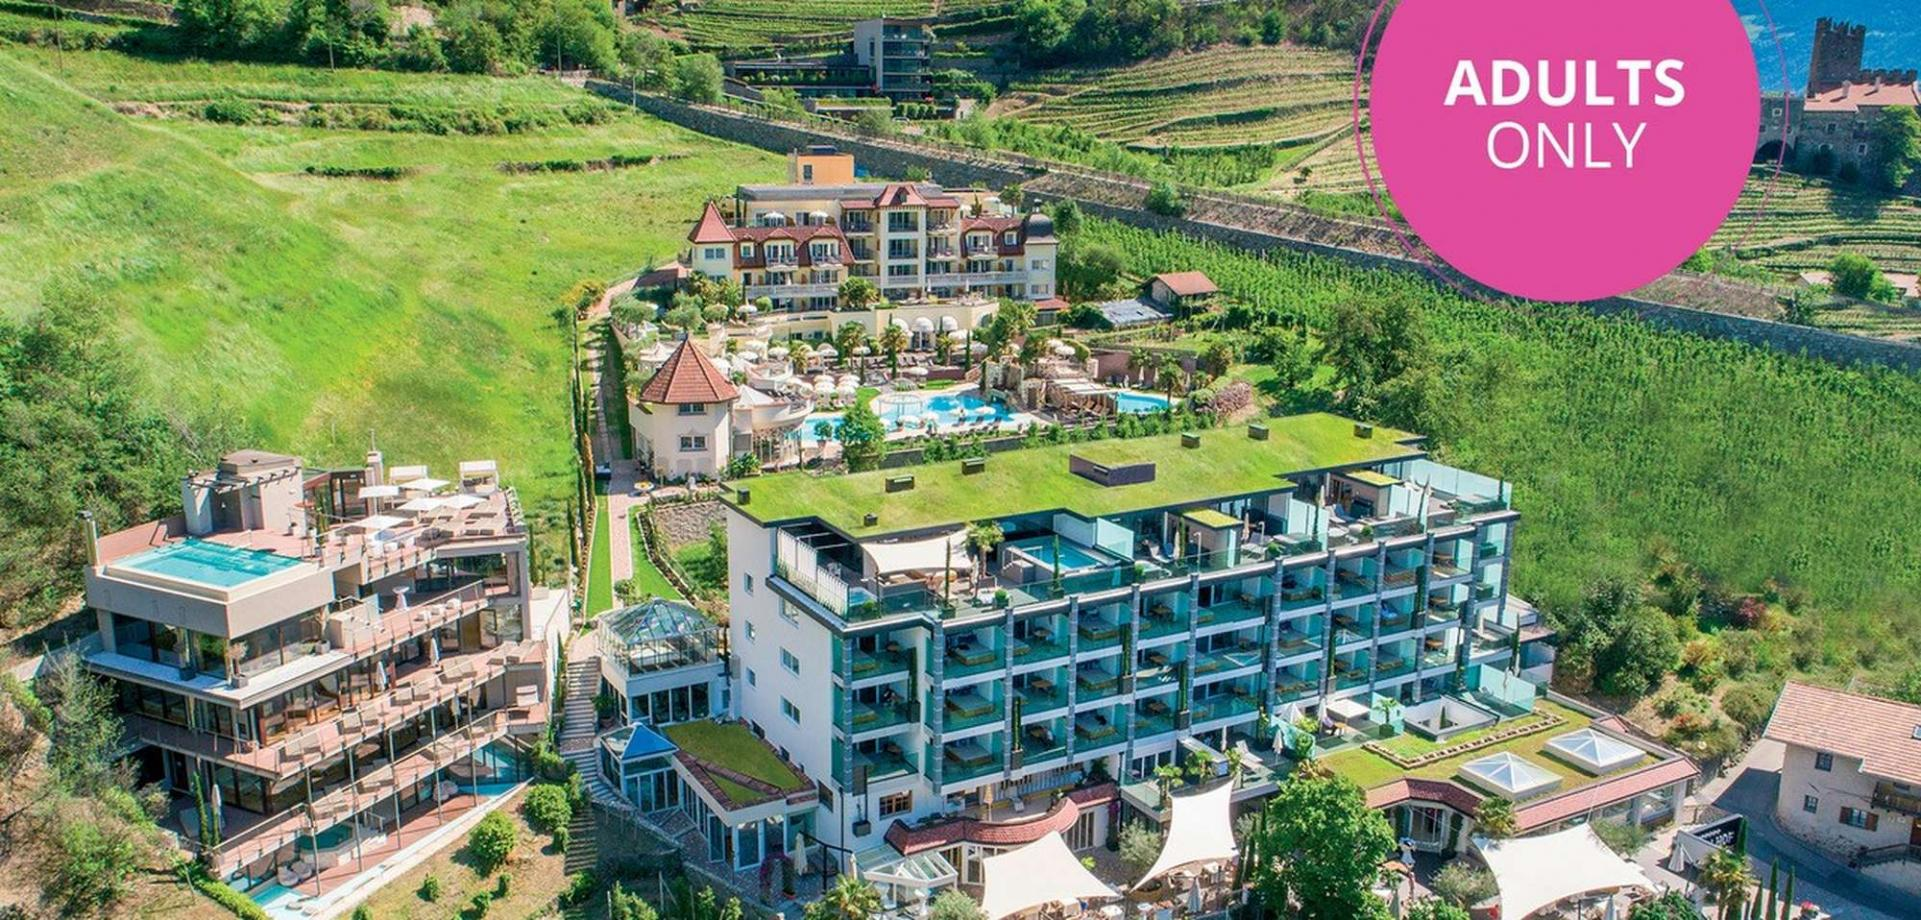 Luxury DolceVita Resort Preidlhof